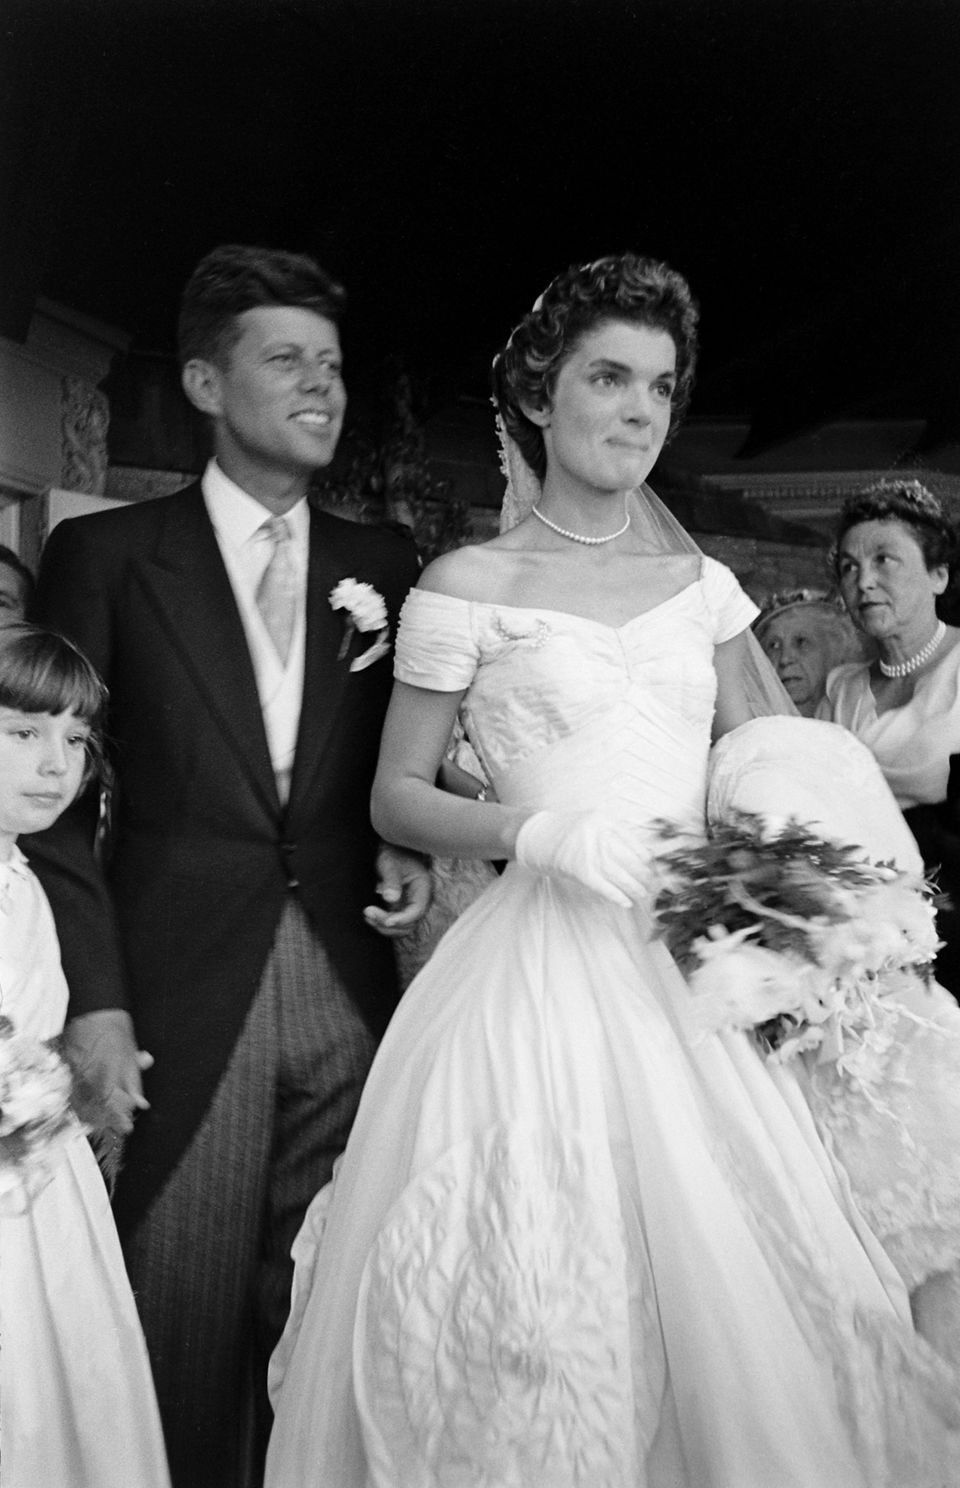 Future Us President John F Kennedy 1917 1963 And Jacqueline 1929 1994 In A Battenburg Wedding Dress Stand Front Of St Mary S Church